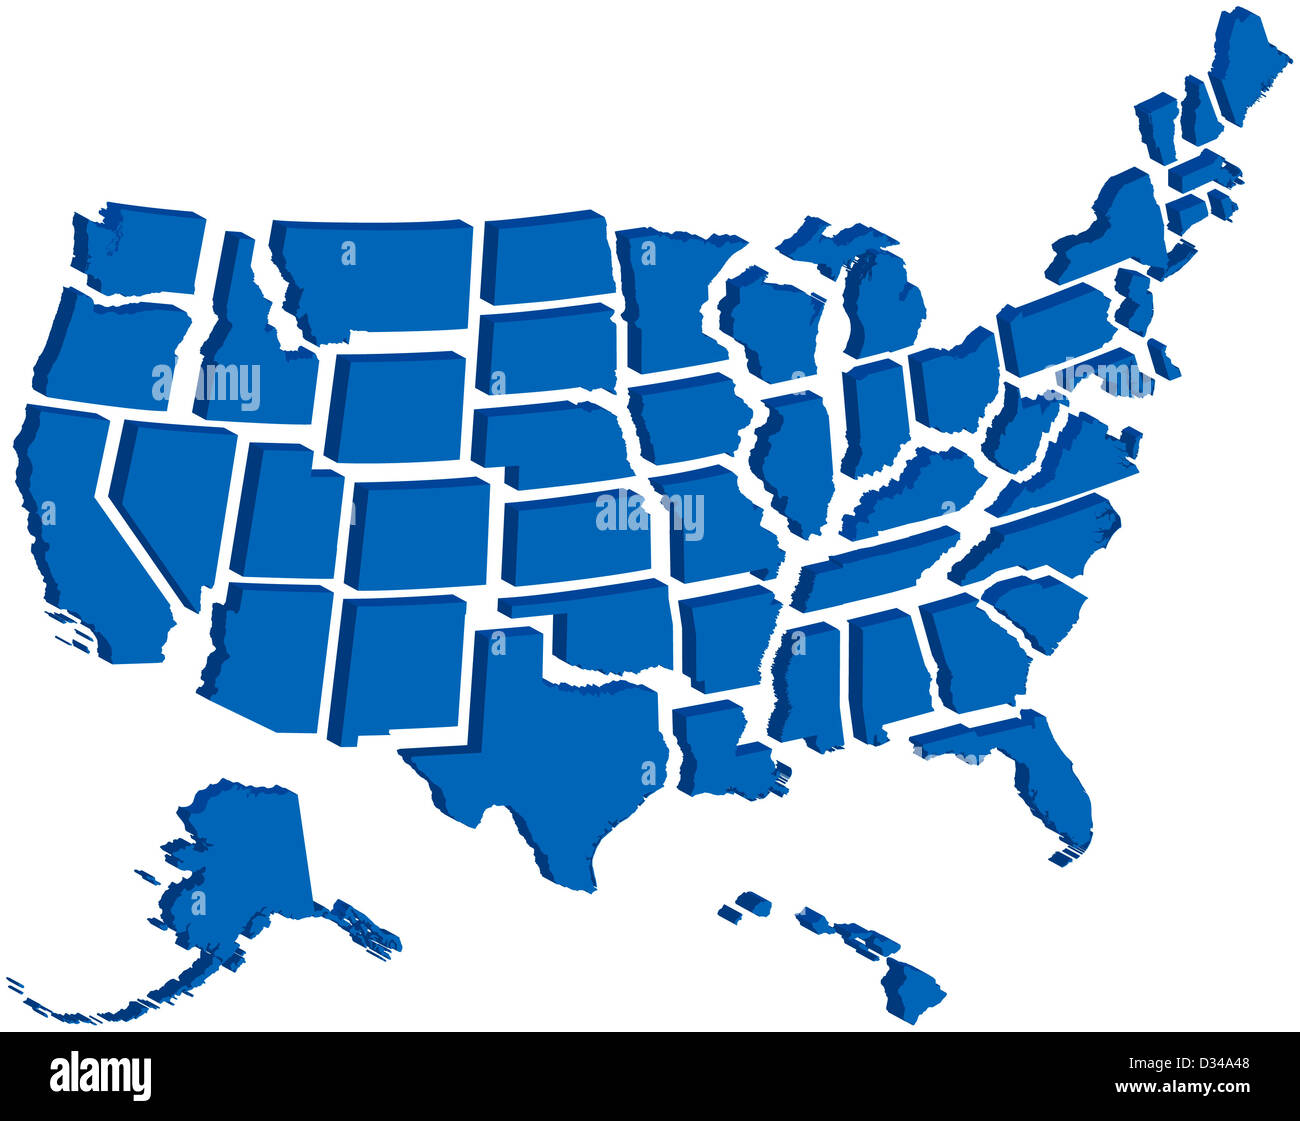 Very detailed map of all fifty states in 3d Stock Photo ... on map of united states with states labeled, map of continents, flag of all fifty states, map of japan, map of u.s. territories, all the states, map of all u.s. states, map of all states of america, outline of all fifty states, map of england, map of mexico, go to all fifty states, map of canada, map of puerto rico, map of all 48 states, map of usa states only, map of guam, map of china,